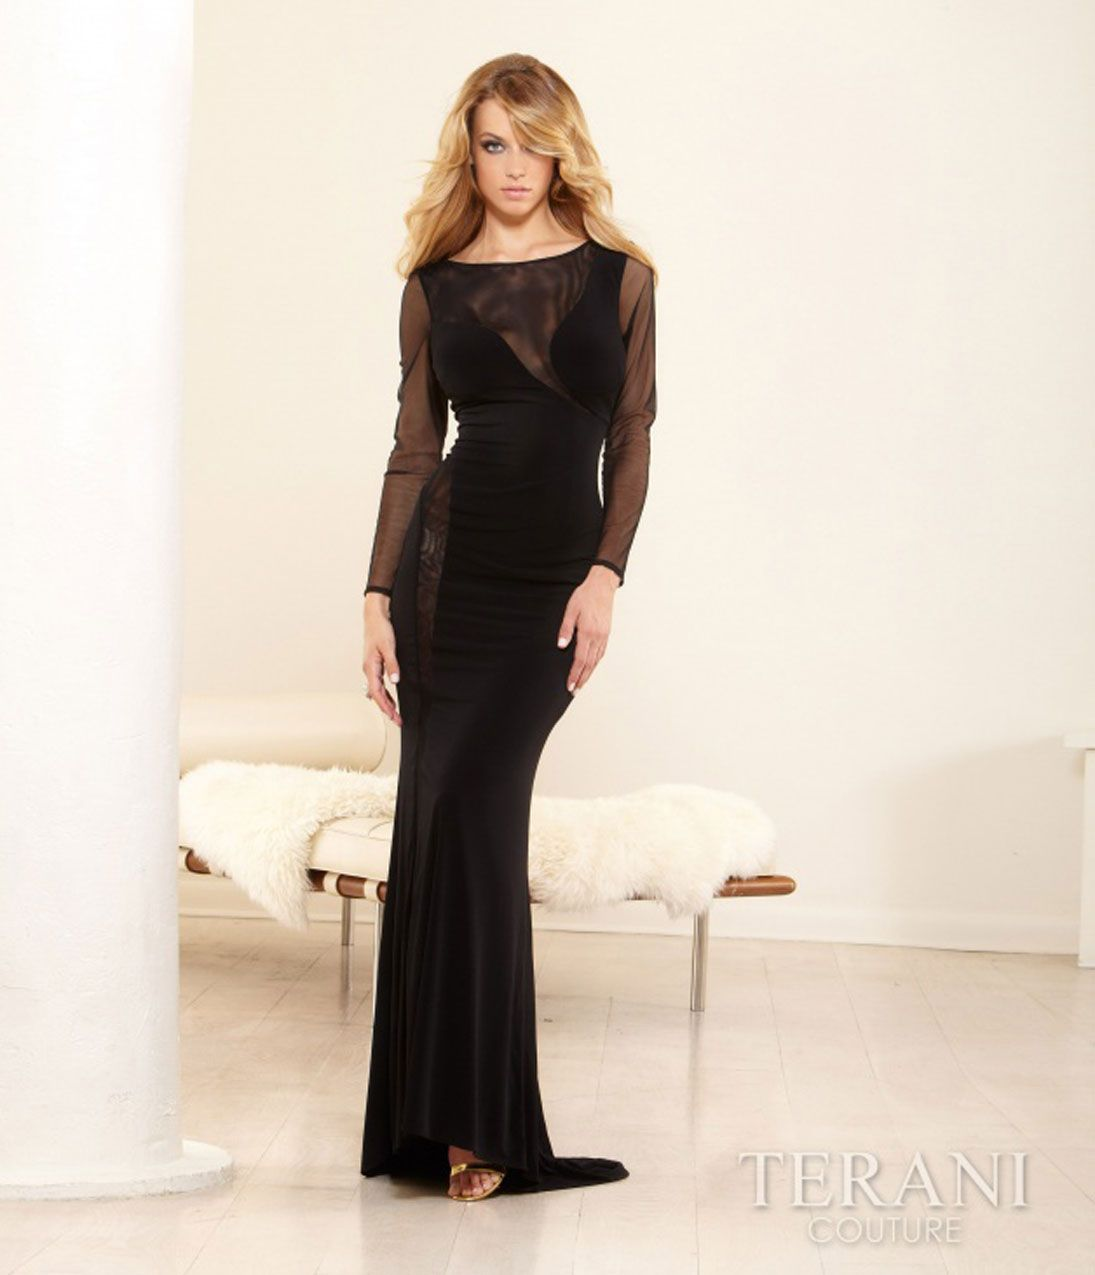 S evening dress art deco gown party dress fashion iud wear